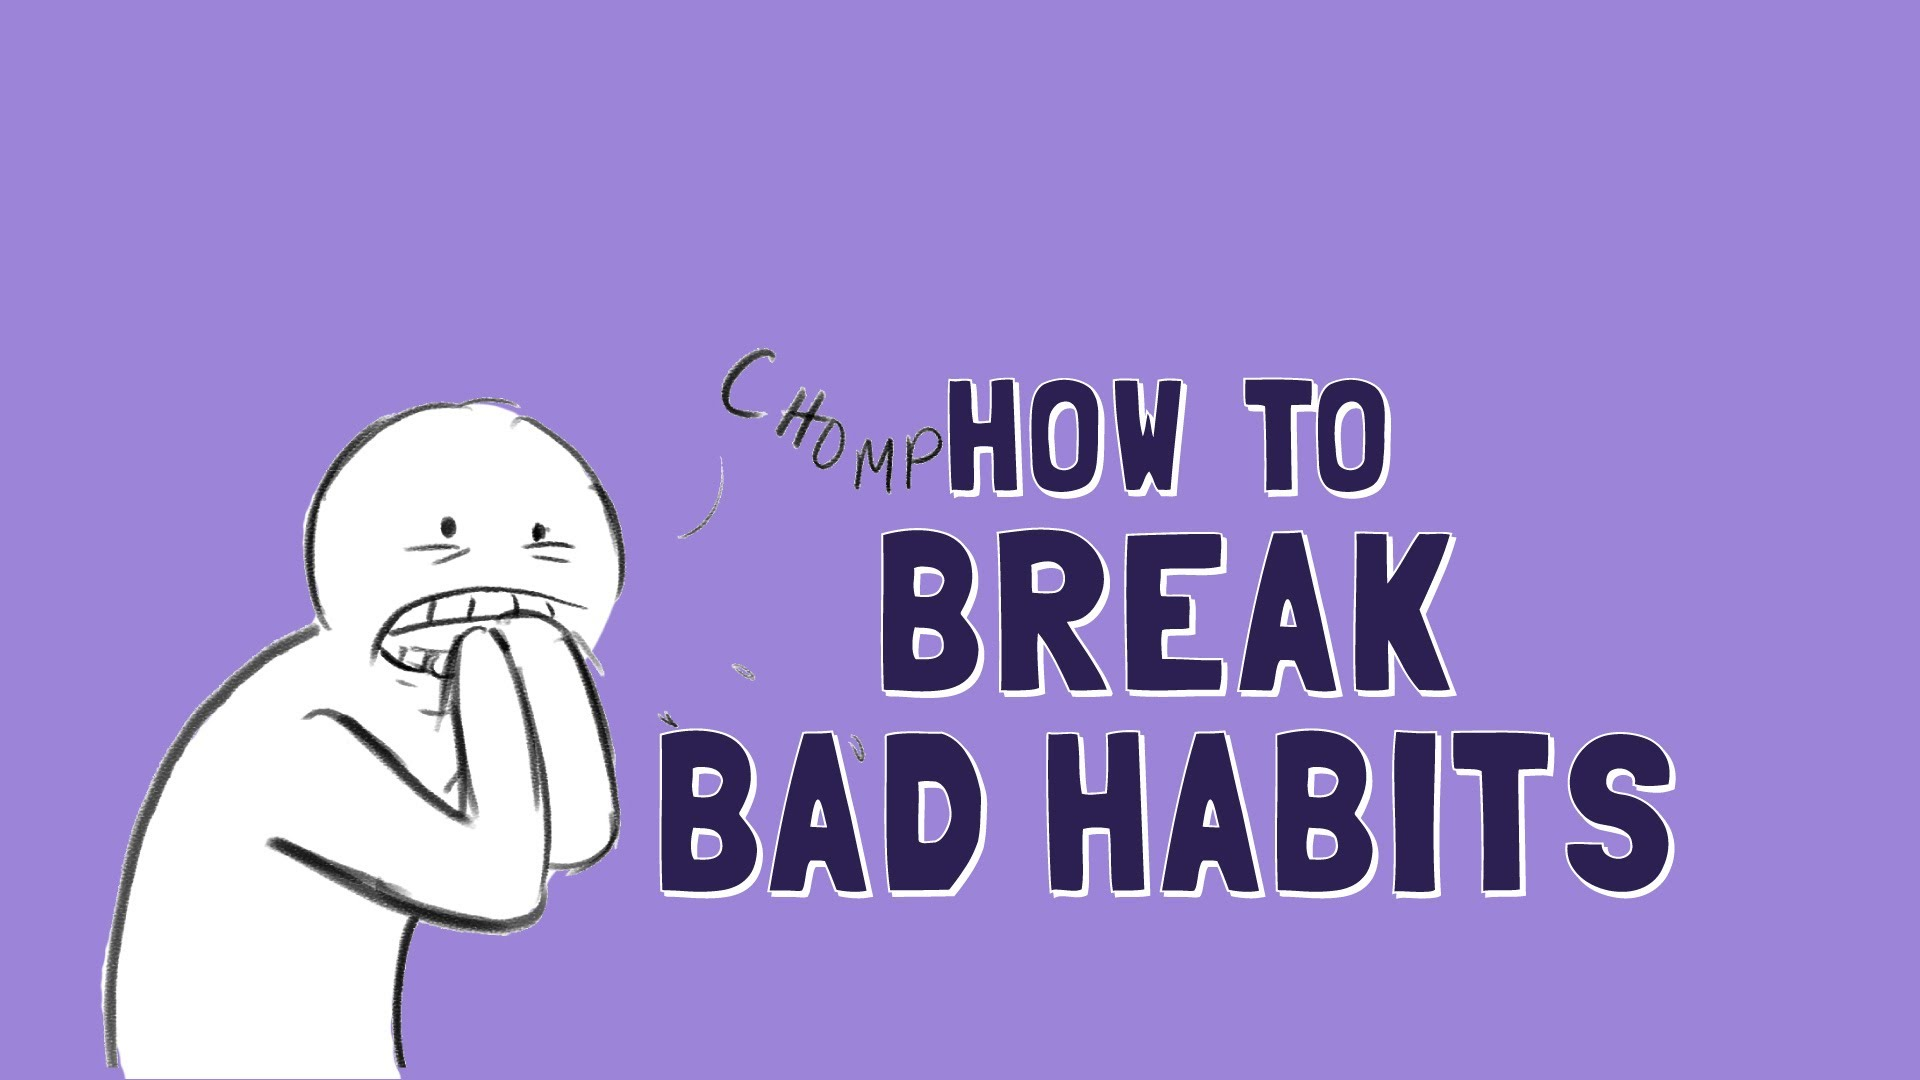 「如何戒掉壞習慣?」- How to Break Bad Habits